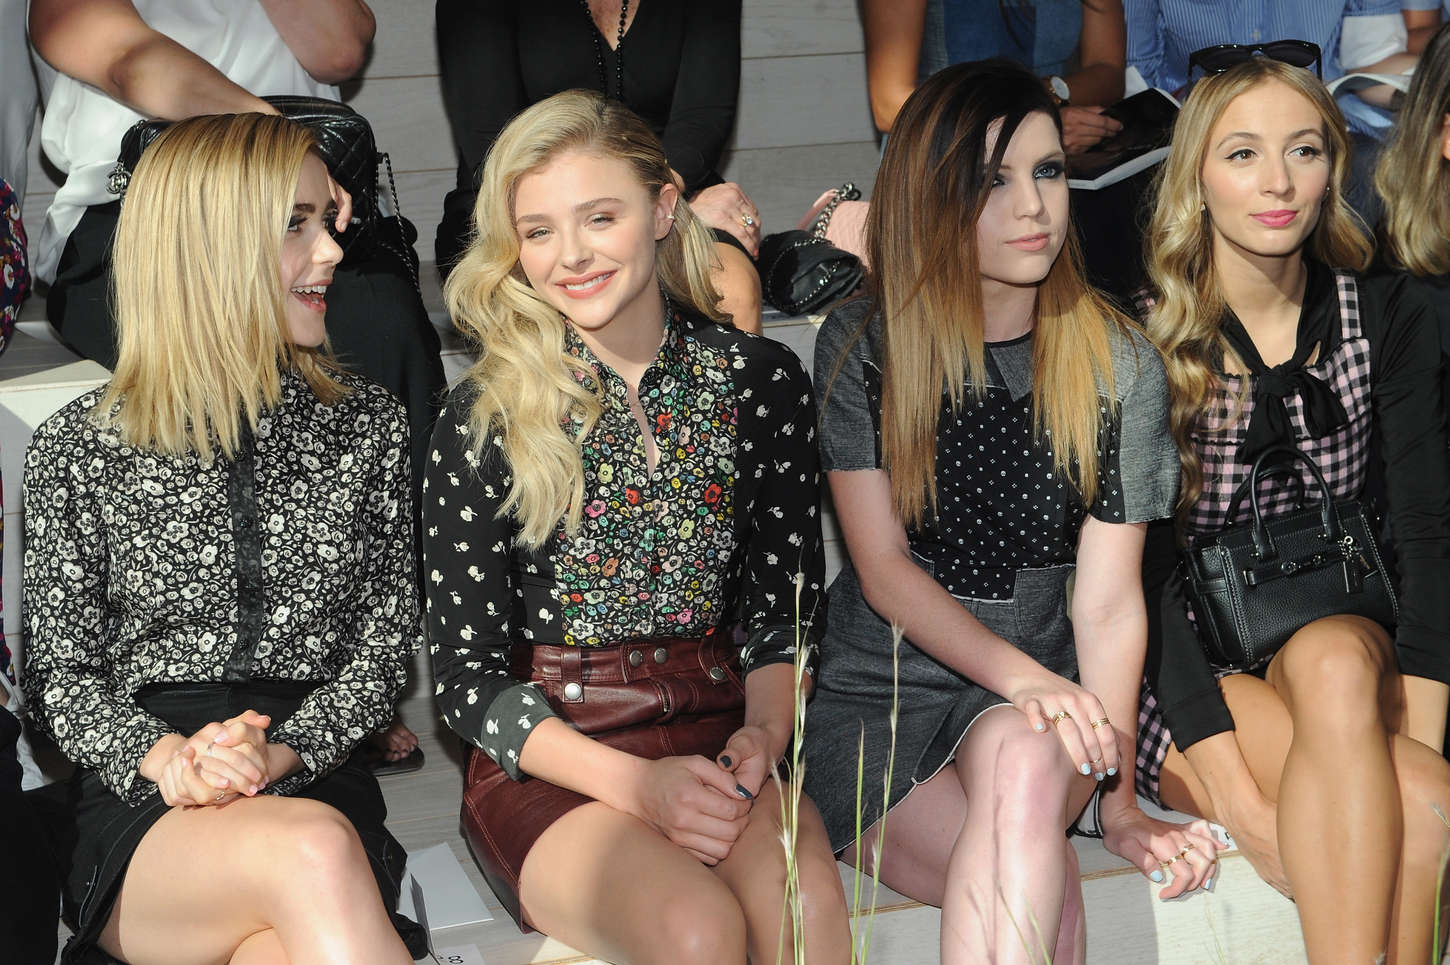 Sydney Sierota Coach Fashion Show Spring NYFW in New York